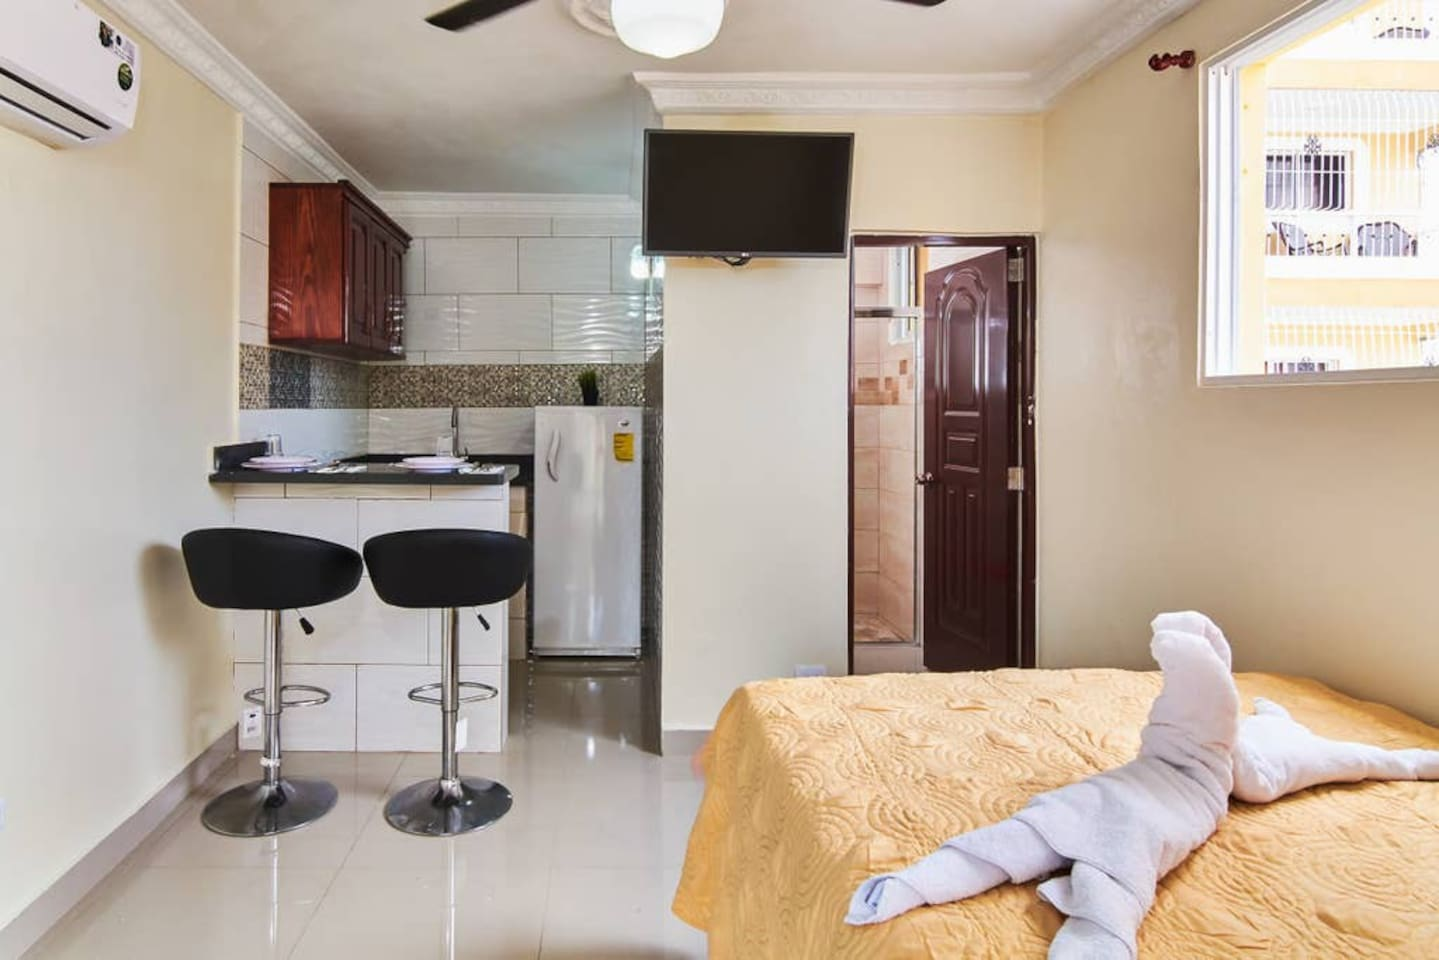 """FREE HIGH SPEED WI-FI,  FREE  A/C, 1 DOUBLE  BED,  LARGE FRIDGE, MICROWAVE, COFFEE MAKER, BREAKFAST COUNTER, SOFA, TV 32"""" CABLE,  1 BATHROOMS WITH SHOWER AND  HOT WATER,  HAIR DRYER, SAFE, IRON AND IRONING BOARD, FREE PARKING -TERRACE"""